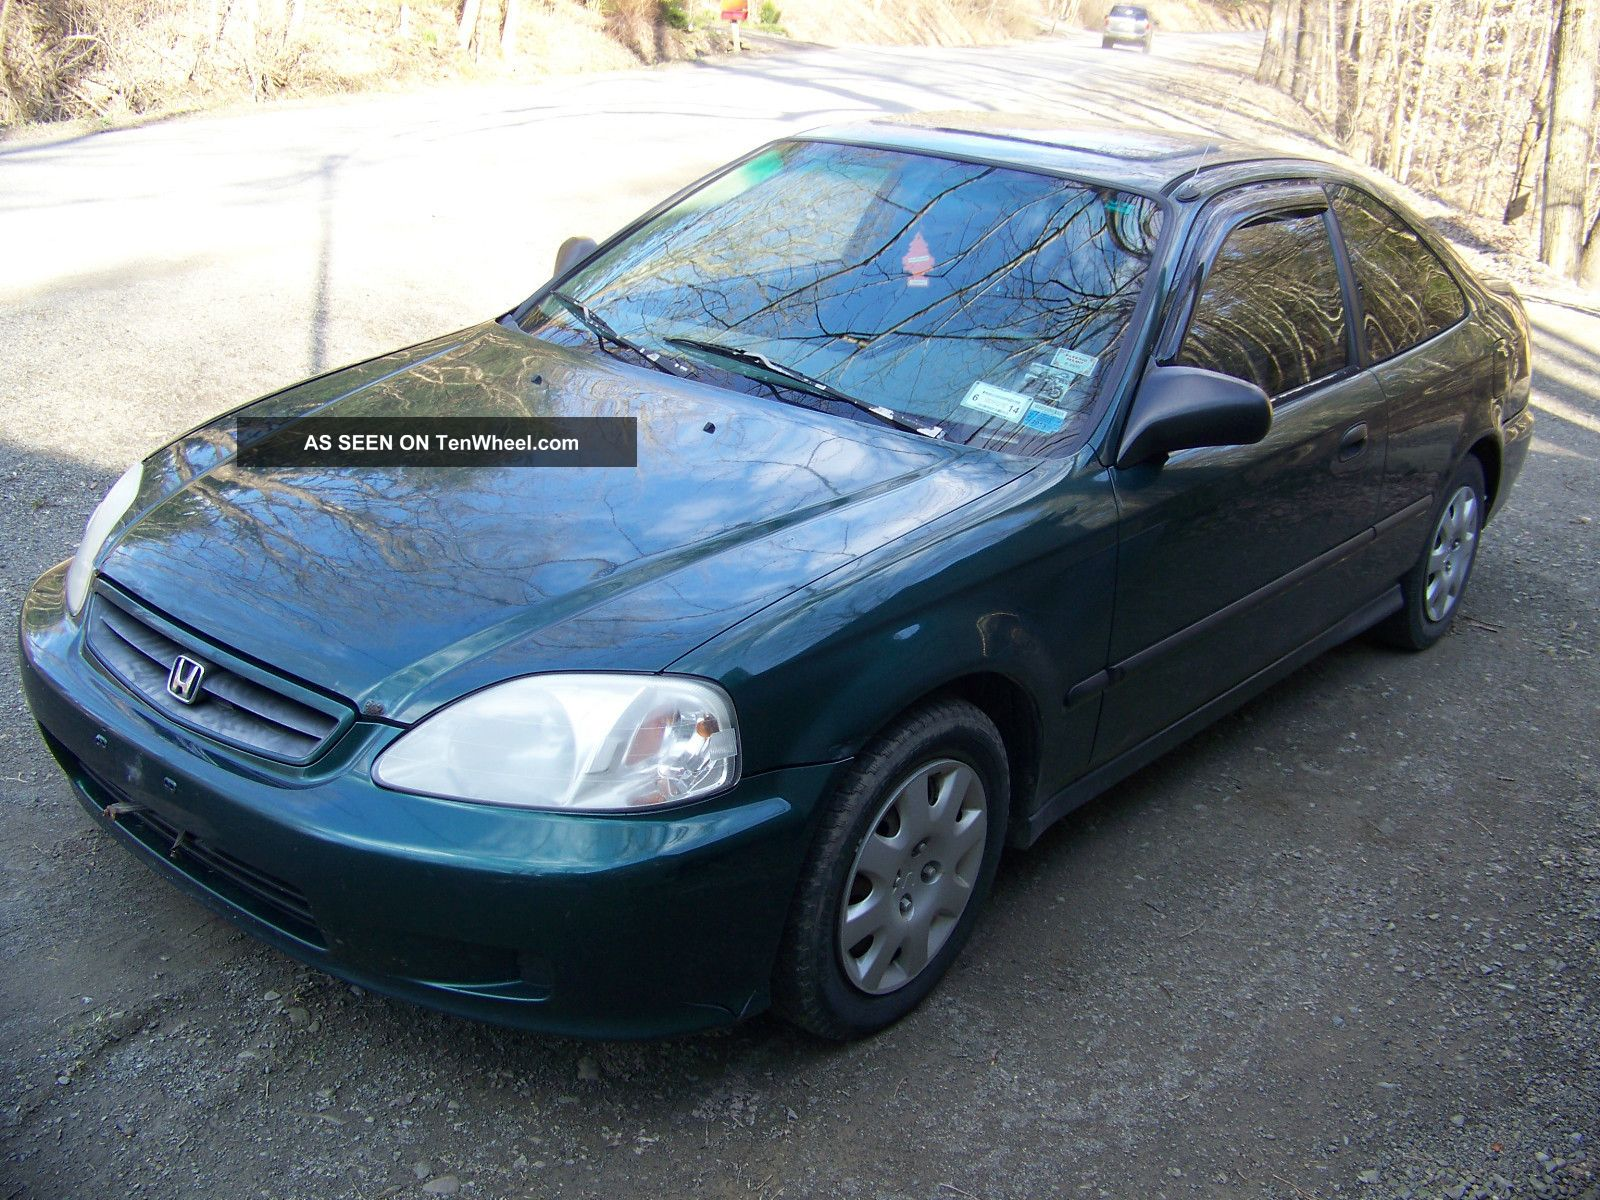 1999 Honda Civic Dx, 2 Door Coupe, Auto, Hunter Green, Tinted Windows,  Sporty